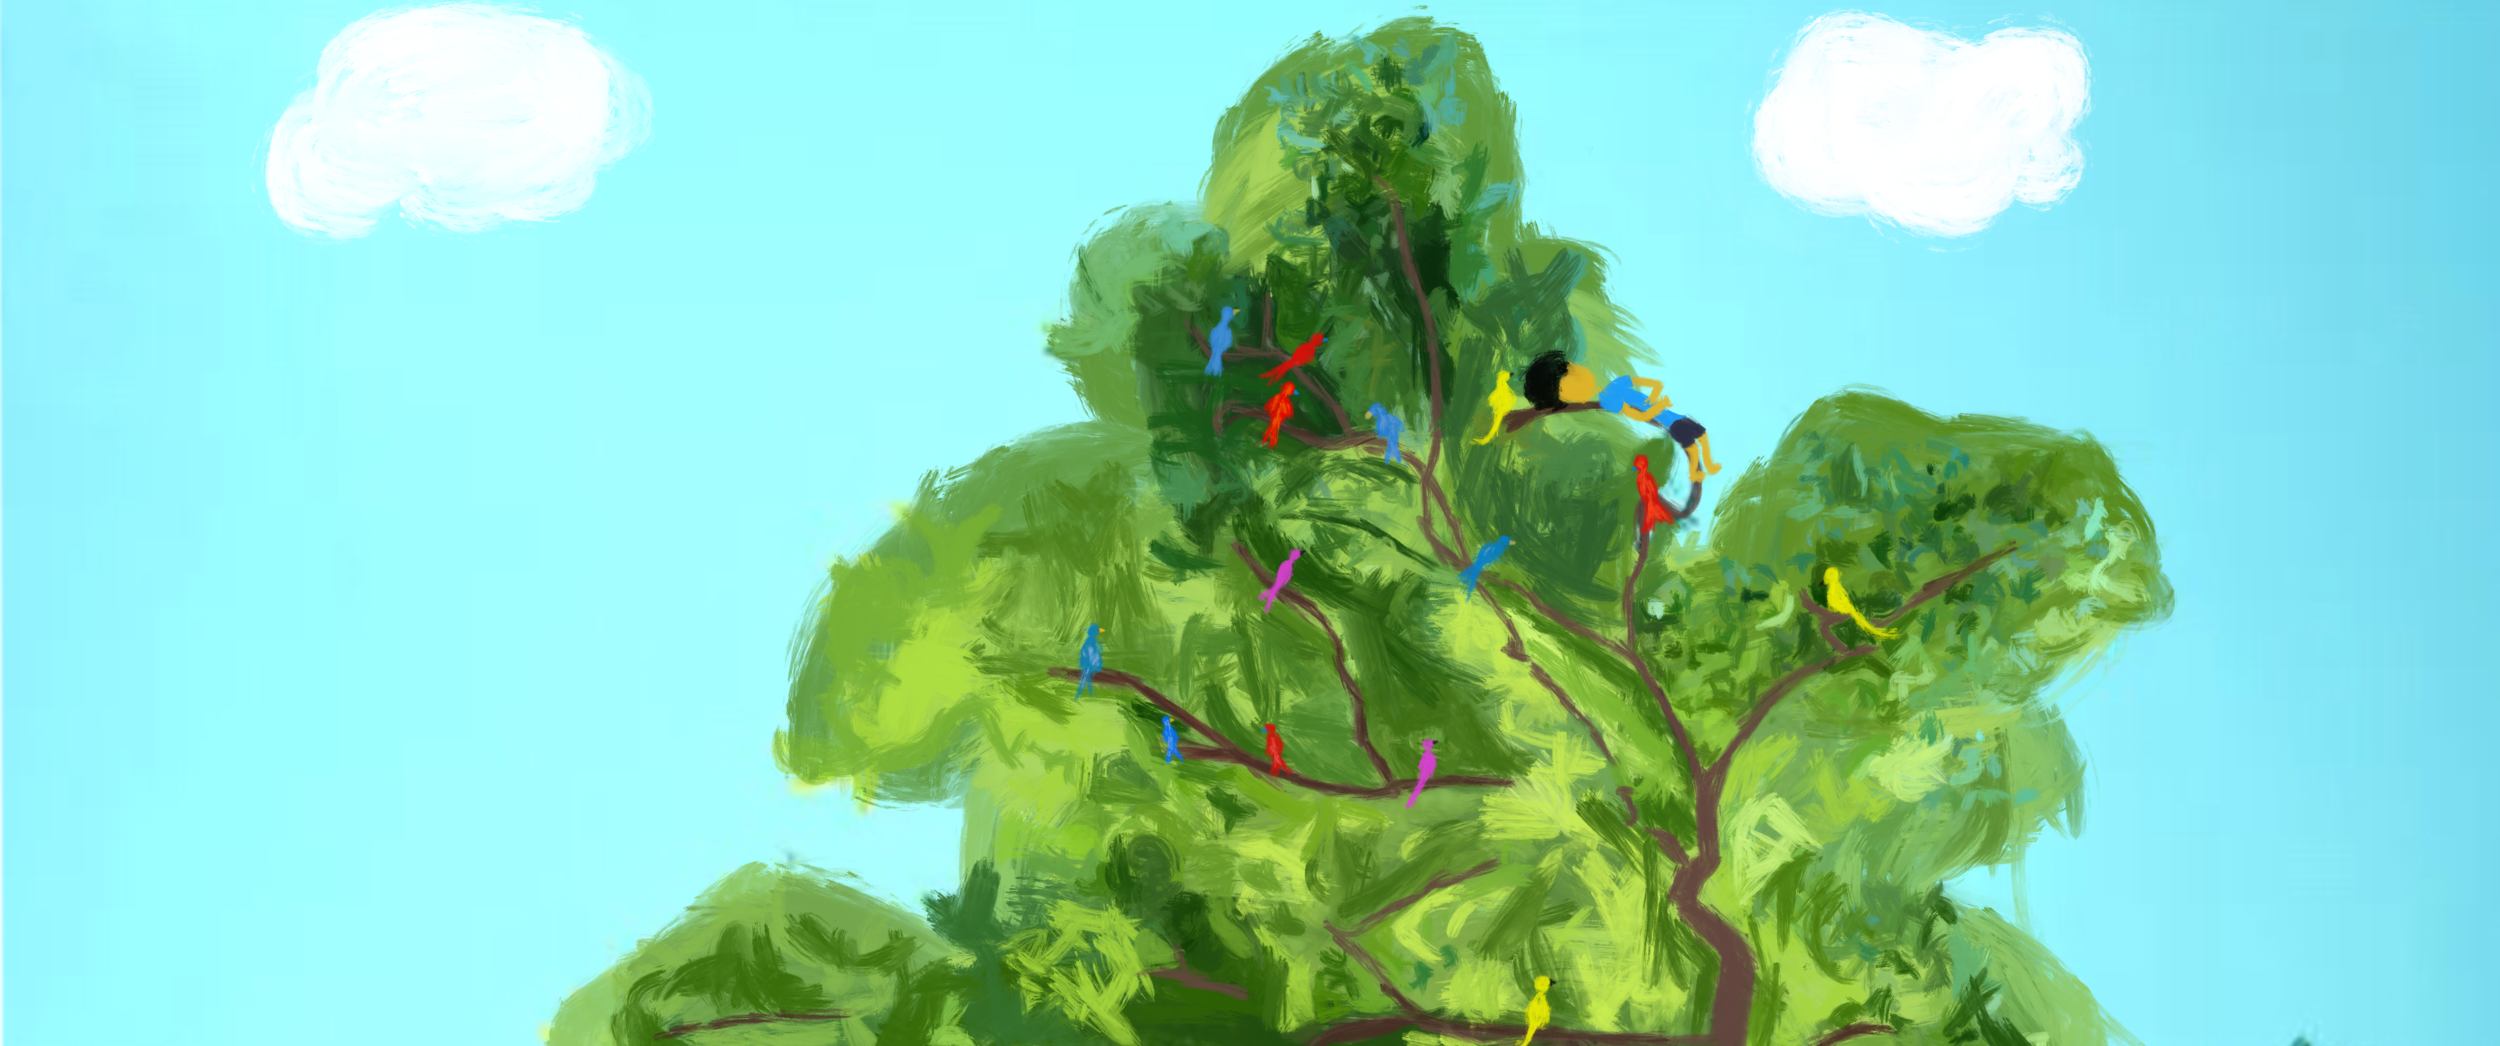 Boy_and_tree_2.png